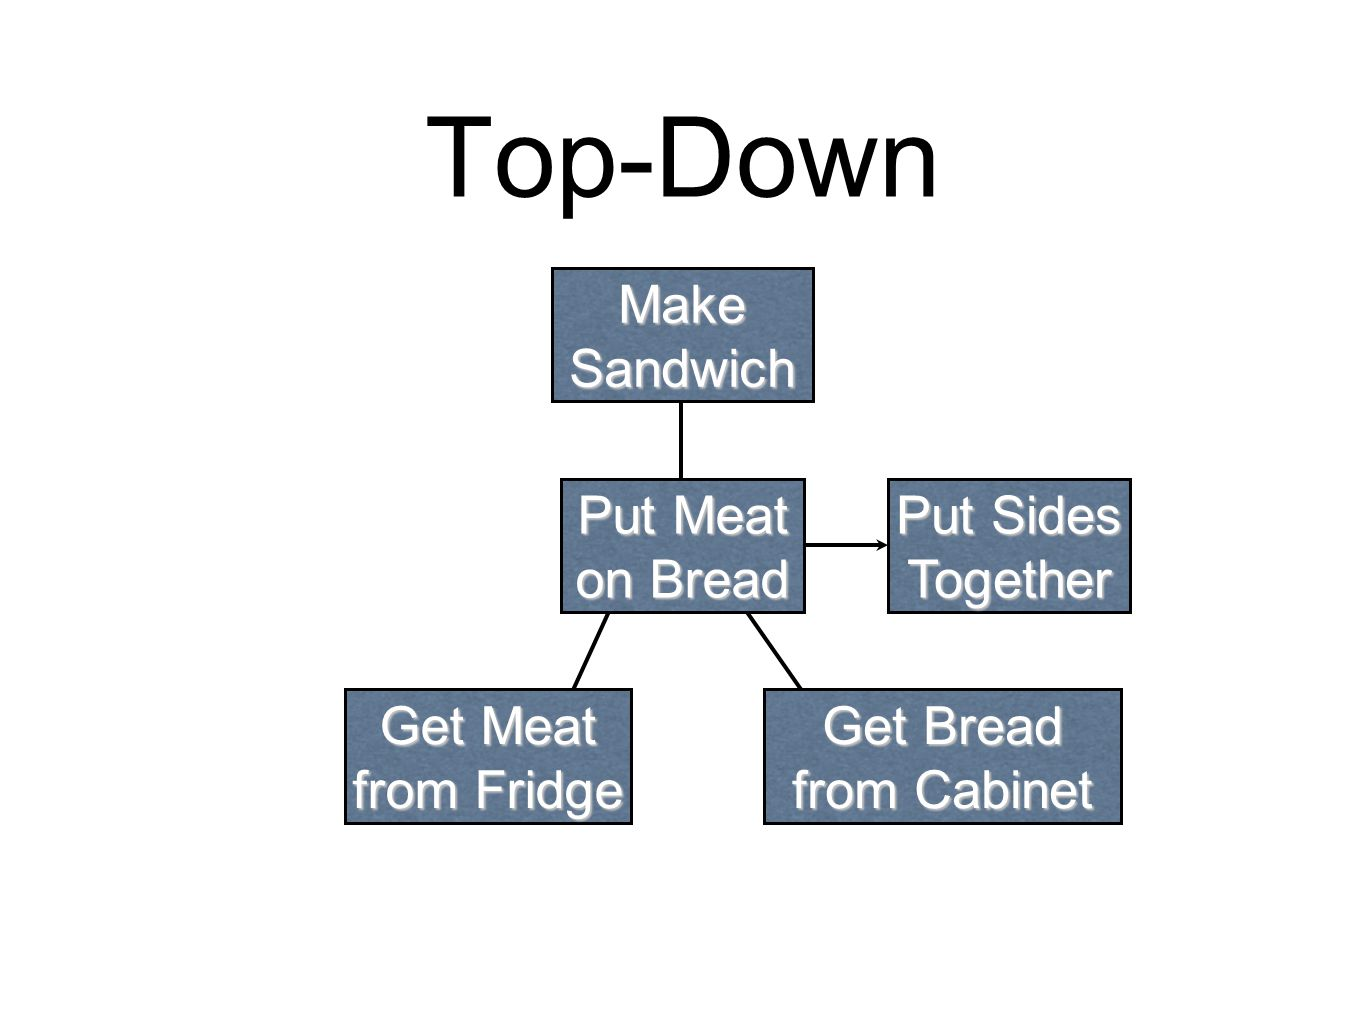 Top-Down Make Sandwich Put Sides Together Put Meat on Bread Get Meat from Fridge Get Bread from Cabinet Open Fridge...